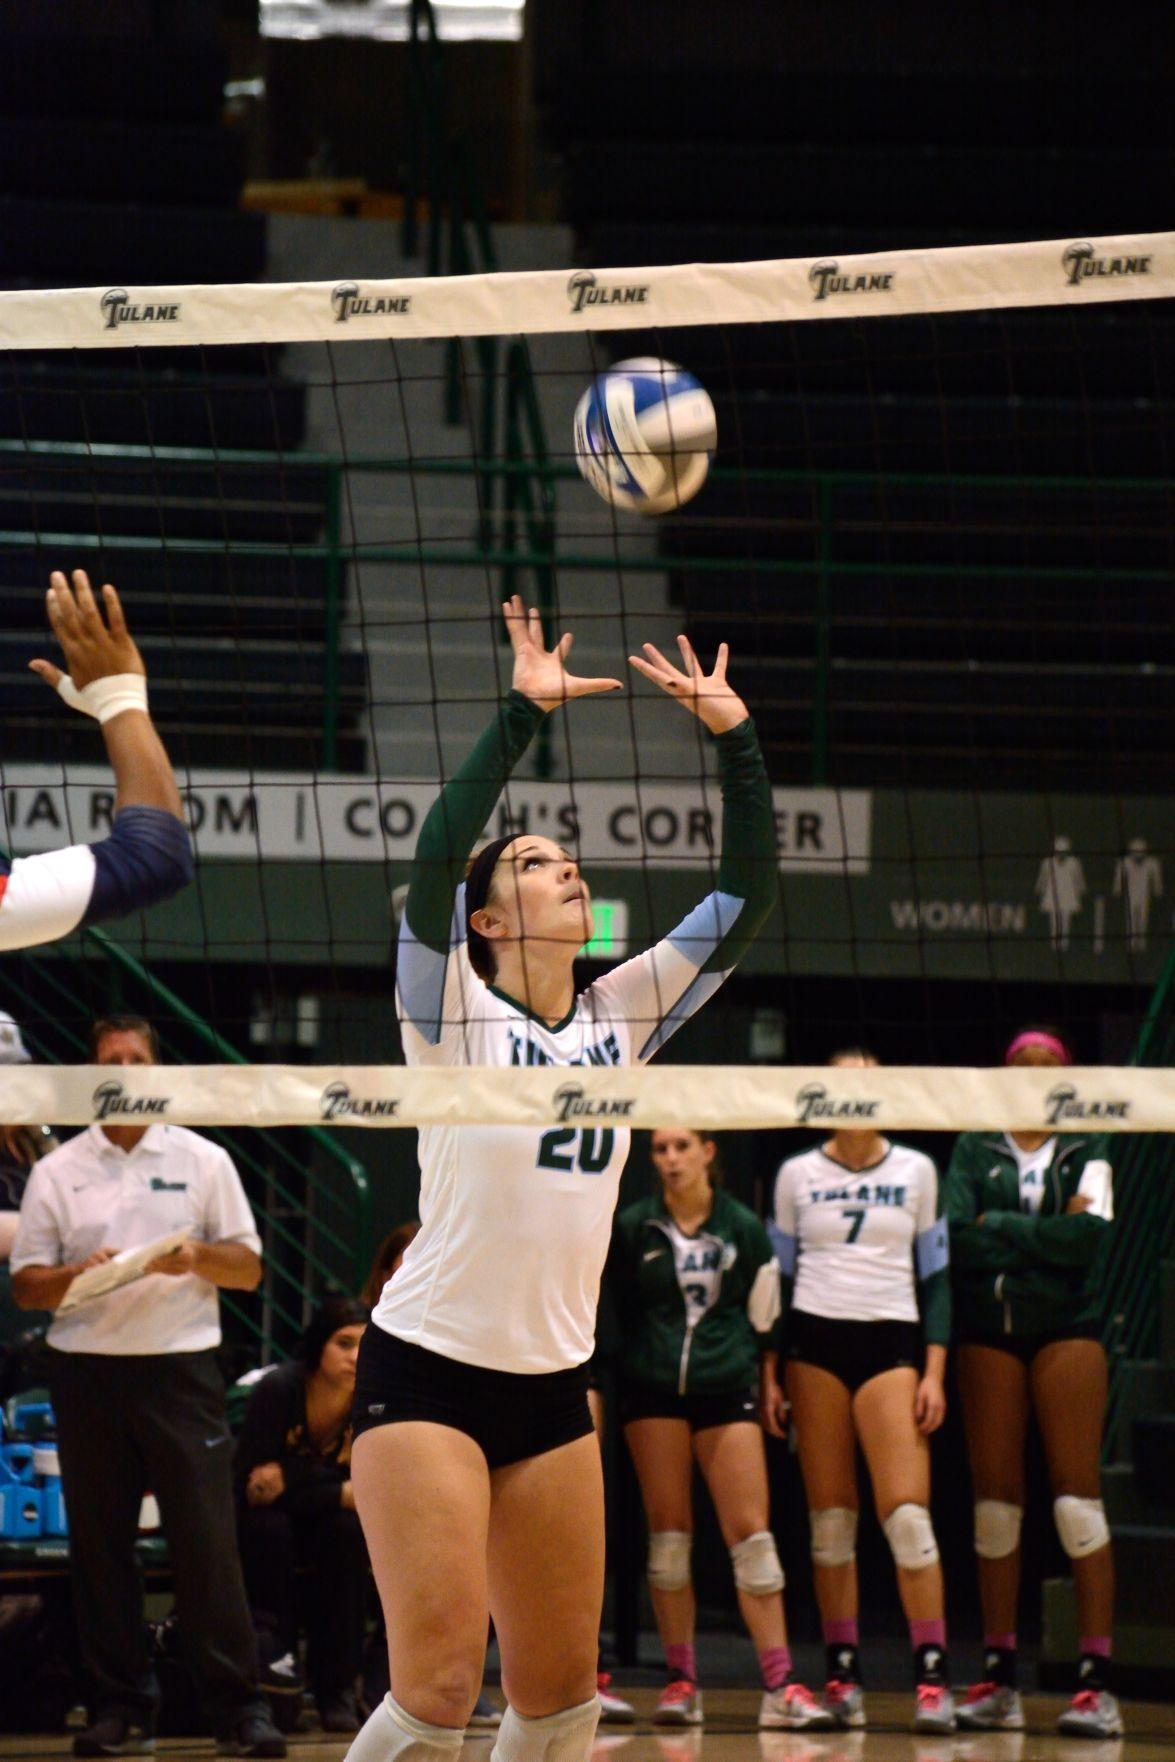 The Green Wave swept the UCF Knights this past weekend, the team's first conference sweep since Nov. 15, 2013.